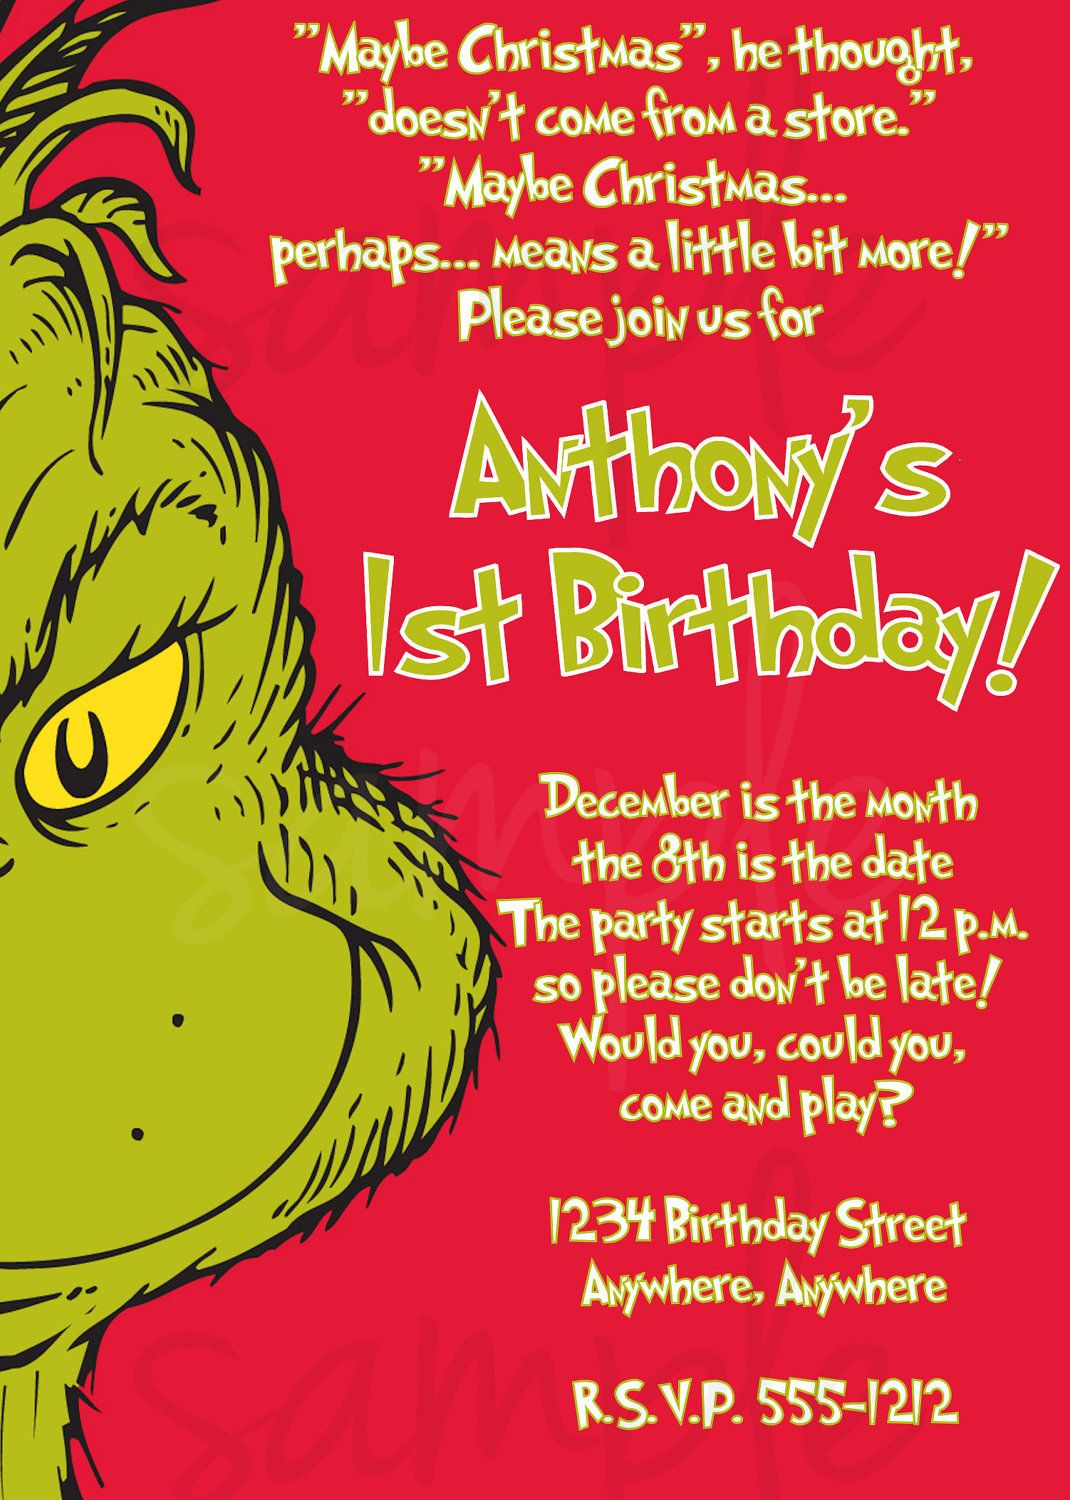 happy birthday grinch ; 7895a2804bed4300af1e52f9d53f4a1e